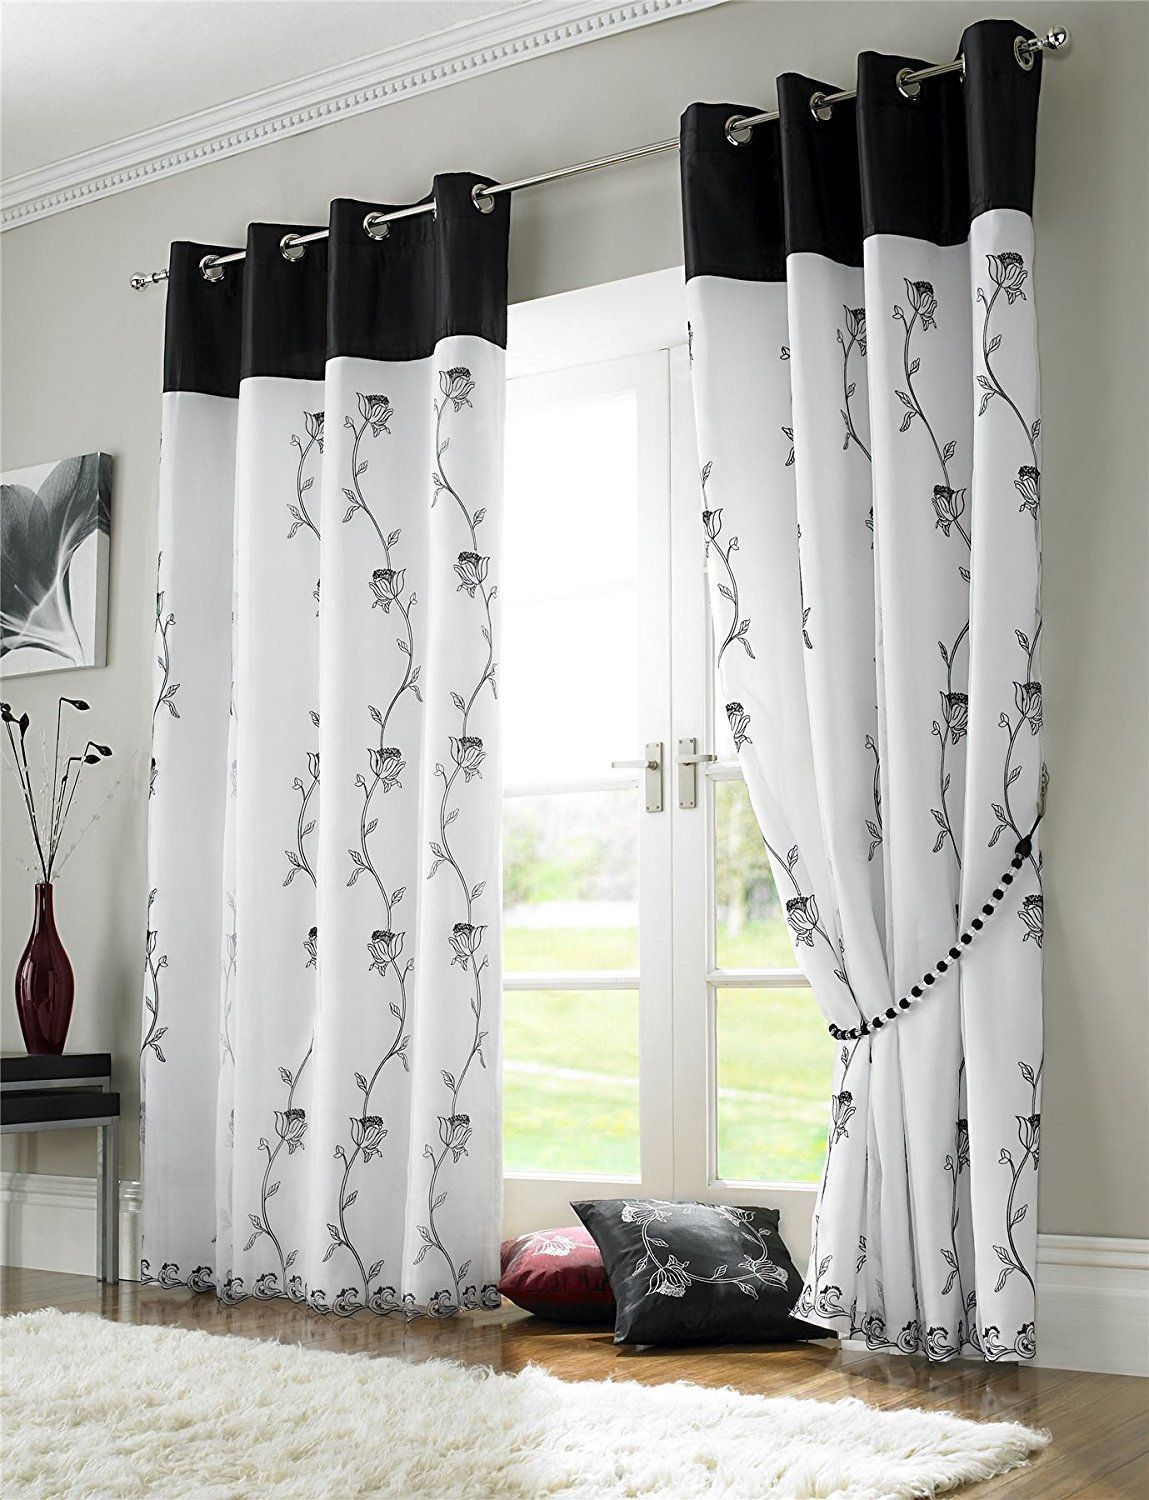 Window coverings of idaho  black white floral rose fully lined ring top voile curtain drapes